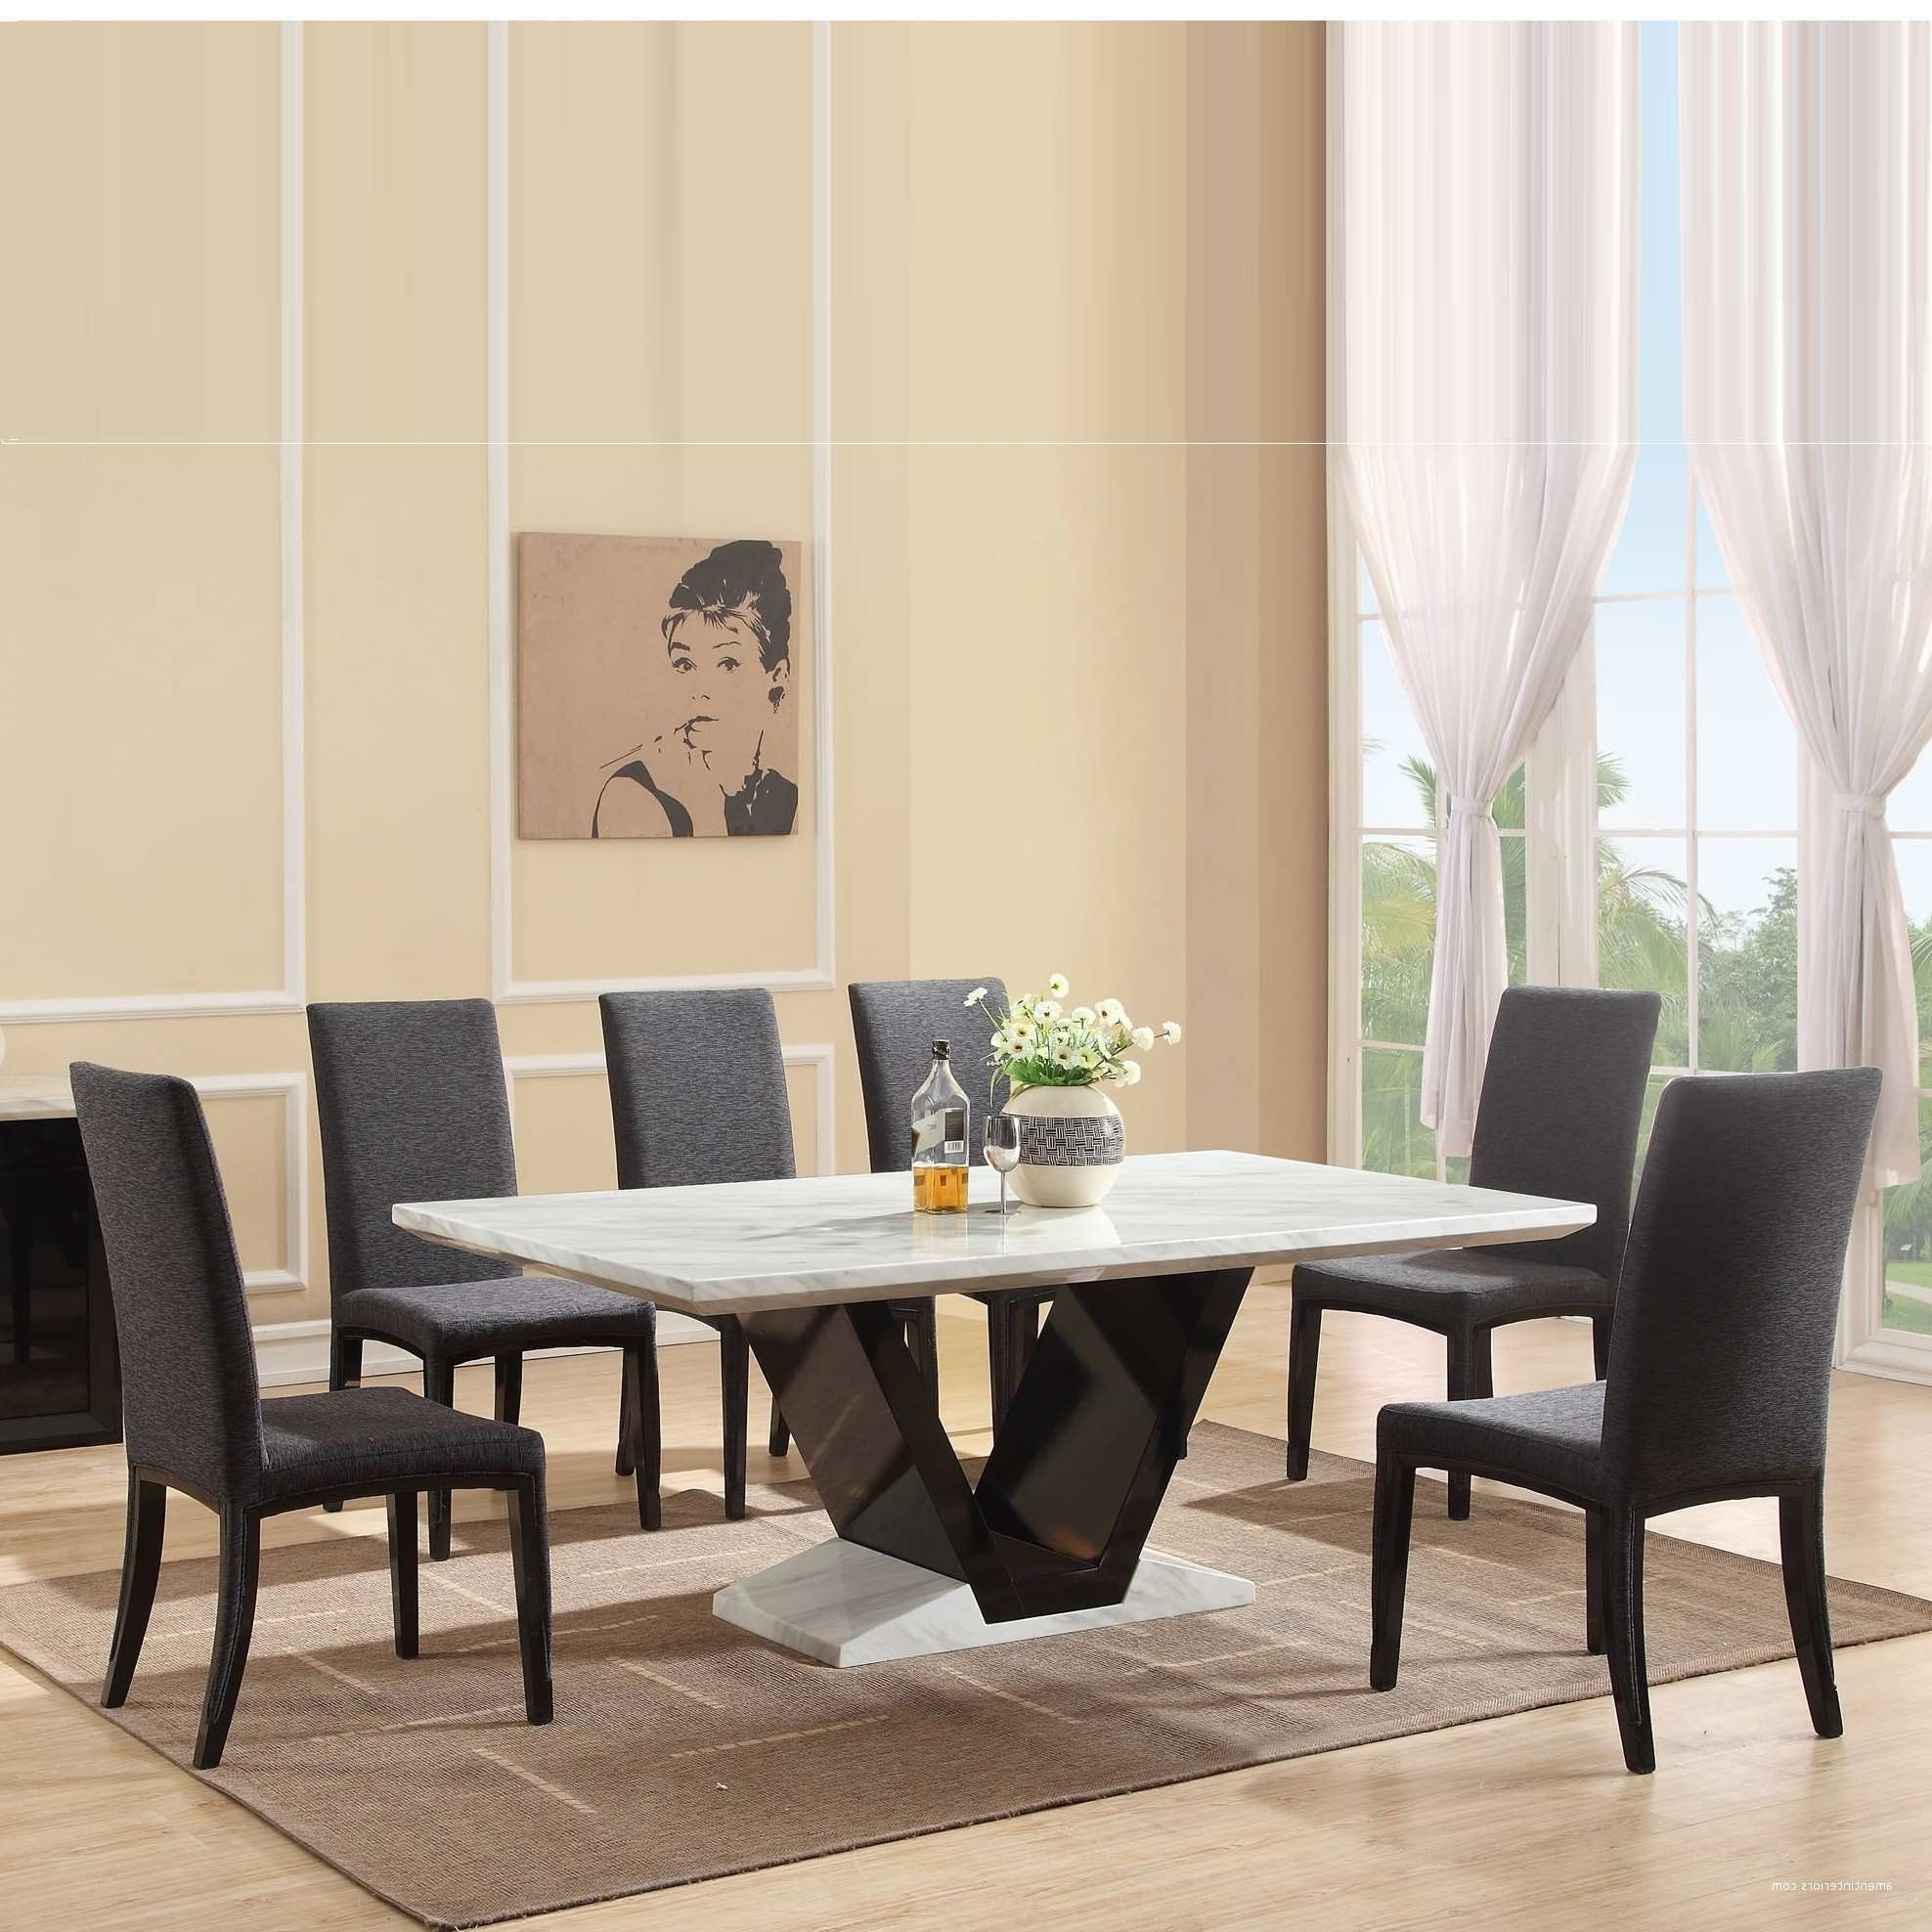 Favorite 6 Seat Round Dining Tables Inside Great Round Extendable Dining Table Seats 10 More Than Elegant (View 13 of 25)